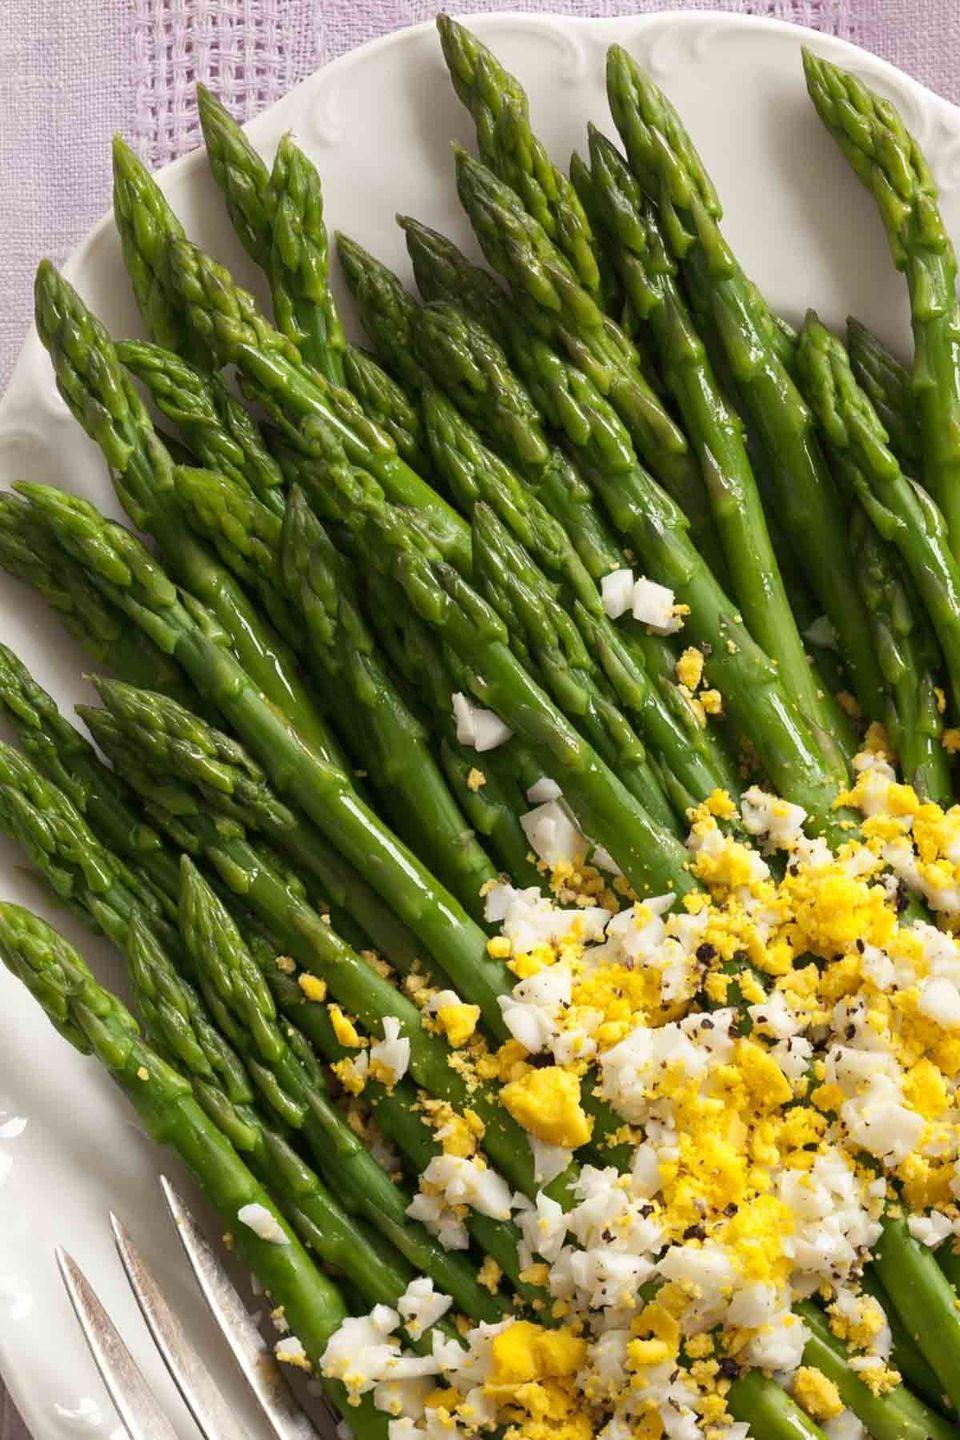 """<p>Looking for a quick side dish? These egg-covered asparagus are packed protein and flavor. </p><p><a href=""""https://www.womansday.com/food-recipes/food-drinks/recipes/a39001/asparagus-eggs-mimosa-recipe-ghk0413/"""" rel=""""nofollow noopener"""" target=""""_blank"""" data-ylk=""""slk:Get the Asparagus with Eggs Mimosa recipe."""" class=""""link rapid-noclick-resp""""><strong><em>Get the Asparagus with Eggs Mimosa recipe.</em></strong></a> </p>"""